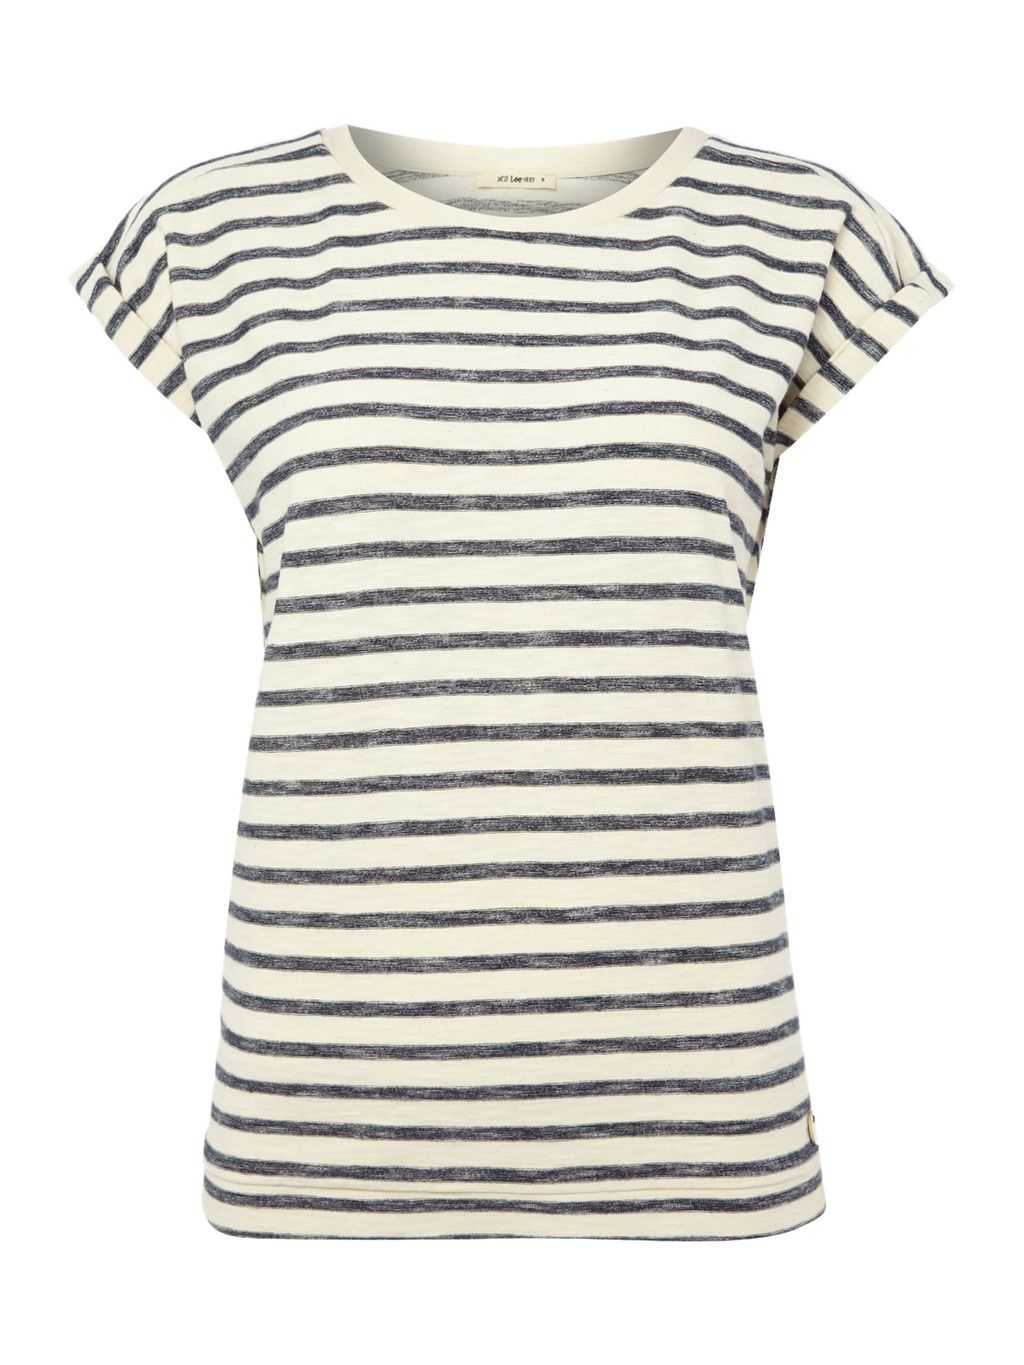 Short Sleeve Striped T Shirt, White - pattern: horizontal stripes; style: t-shirt; predominant colour: ivory/cream; secondary colour: light grey; occasions: casual; length: standard; fibres: cotton - 100%; fit: body skimming; neckline: crew; sleeve length: short sleeve; sleeve style: standard; pattern type: fabric; pattern size: standard; texture group: jersey - stretchy/drapey; season: s/s 2016; wardrobe: basic